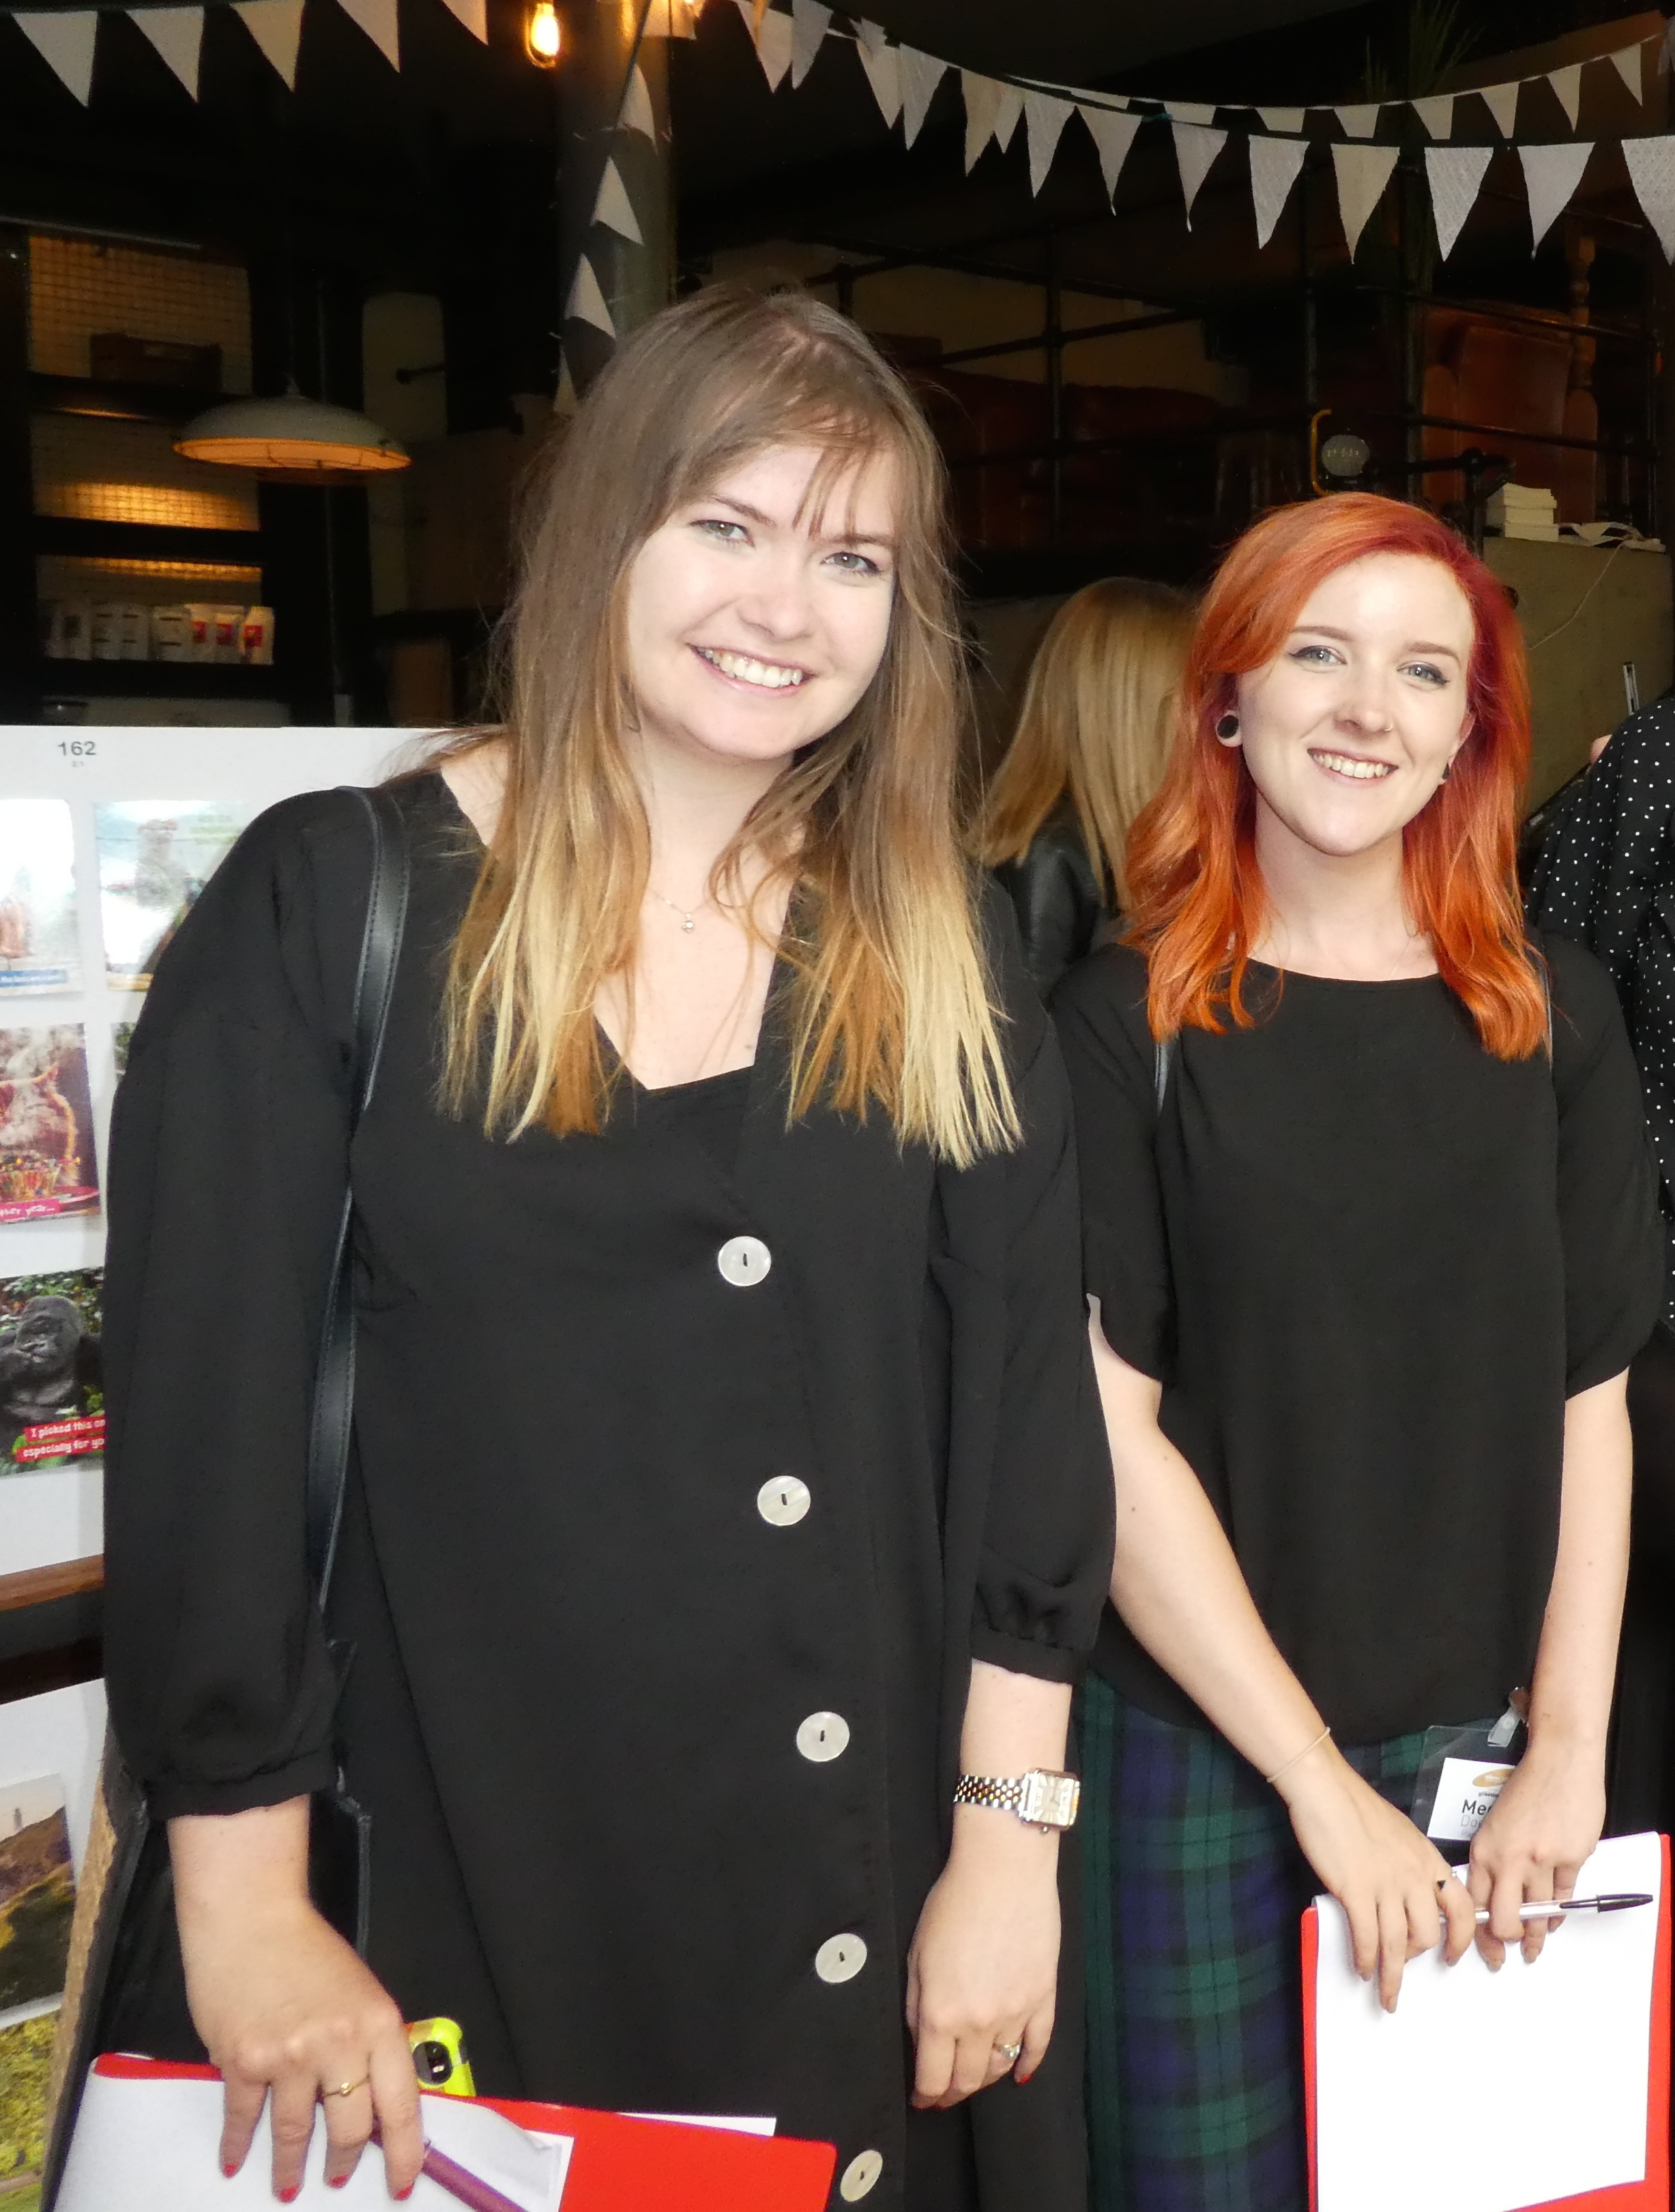 Above: Daisy Enticott (left) with colleague Megan Douglas at the recent Henries judging.